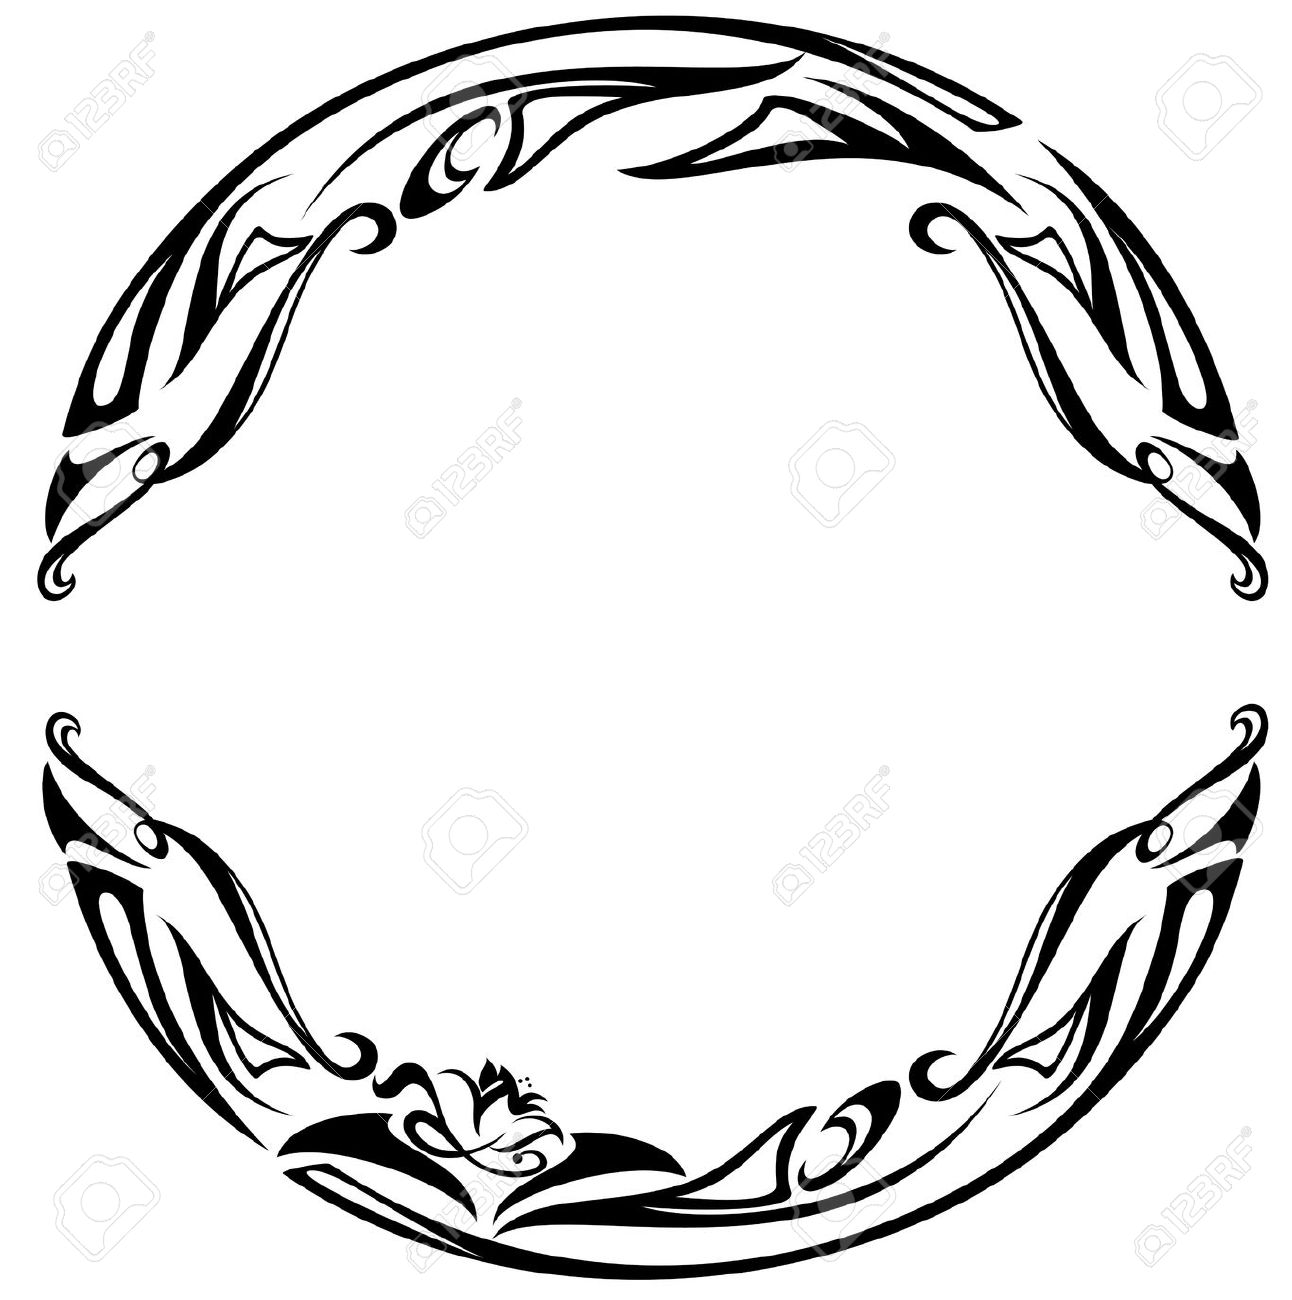 art nouveau border: art nouveau style round frame - black and white abstract floral design